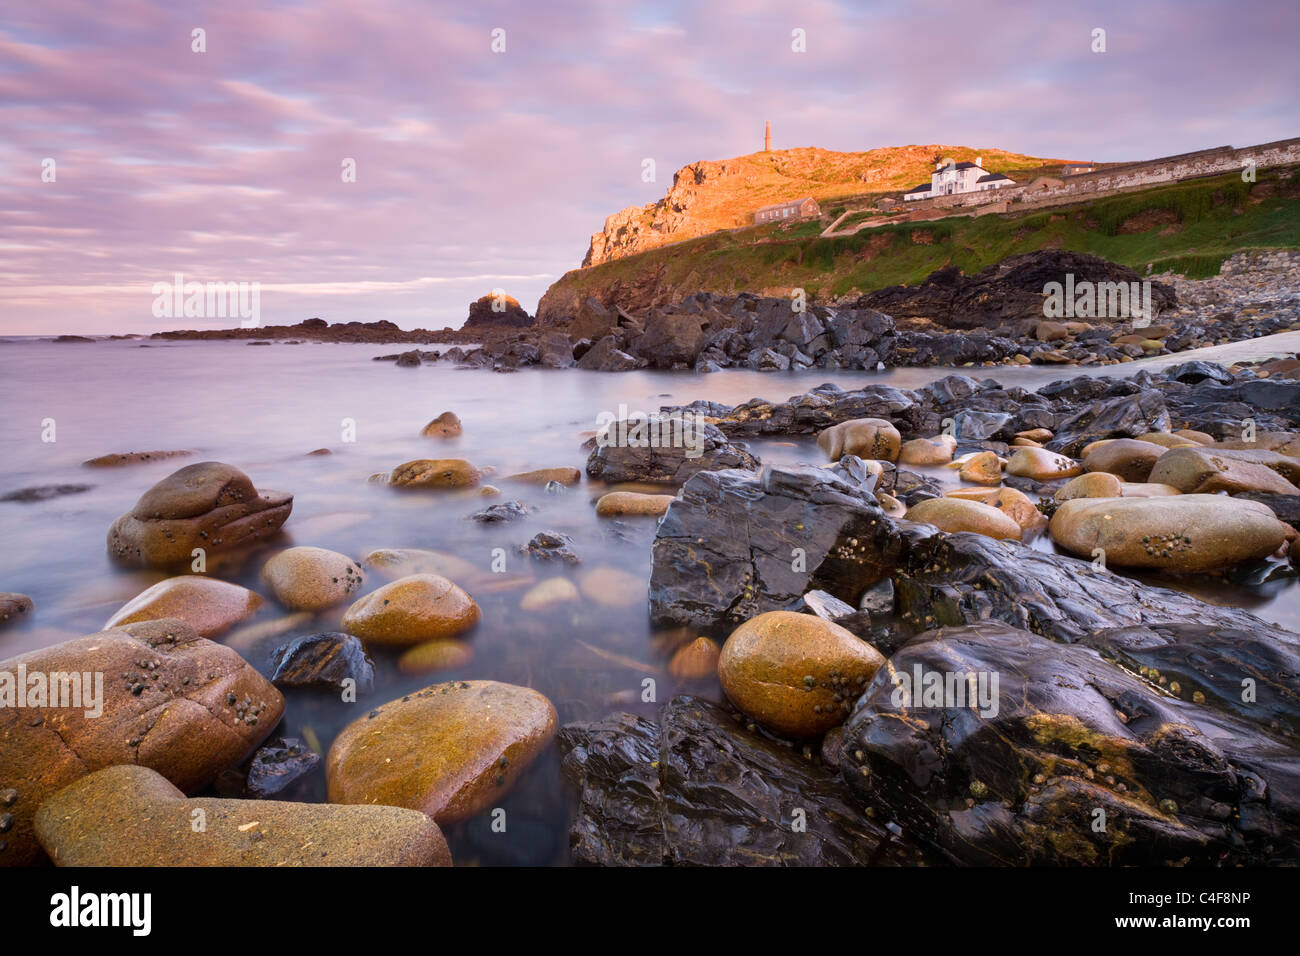 Rocky seashore à Priest's Cove sous cape Cornwall, St Just, Cornwall, Angleterre. L'automne (octobre) Photo Stock